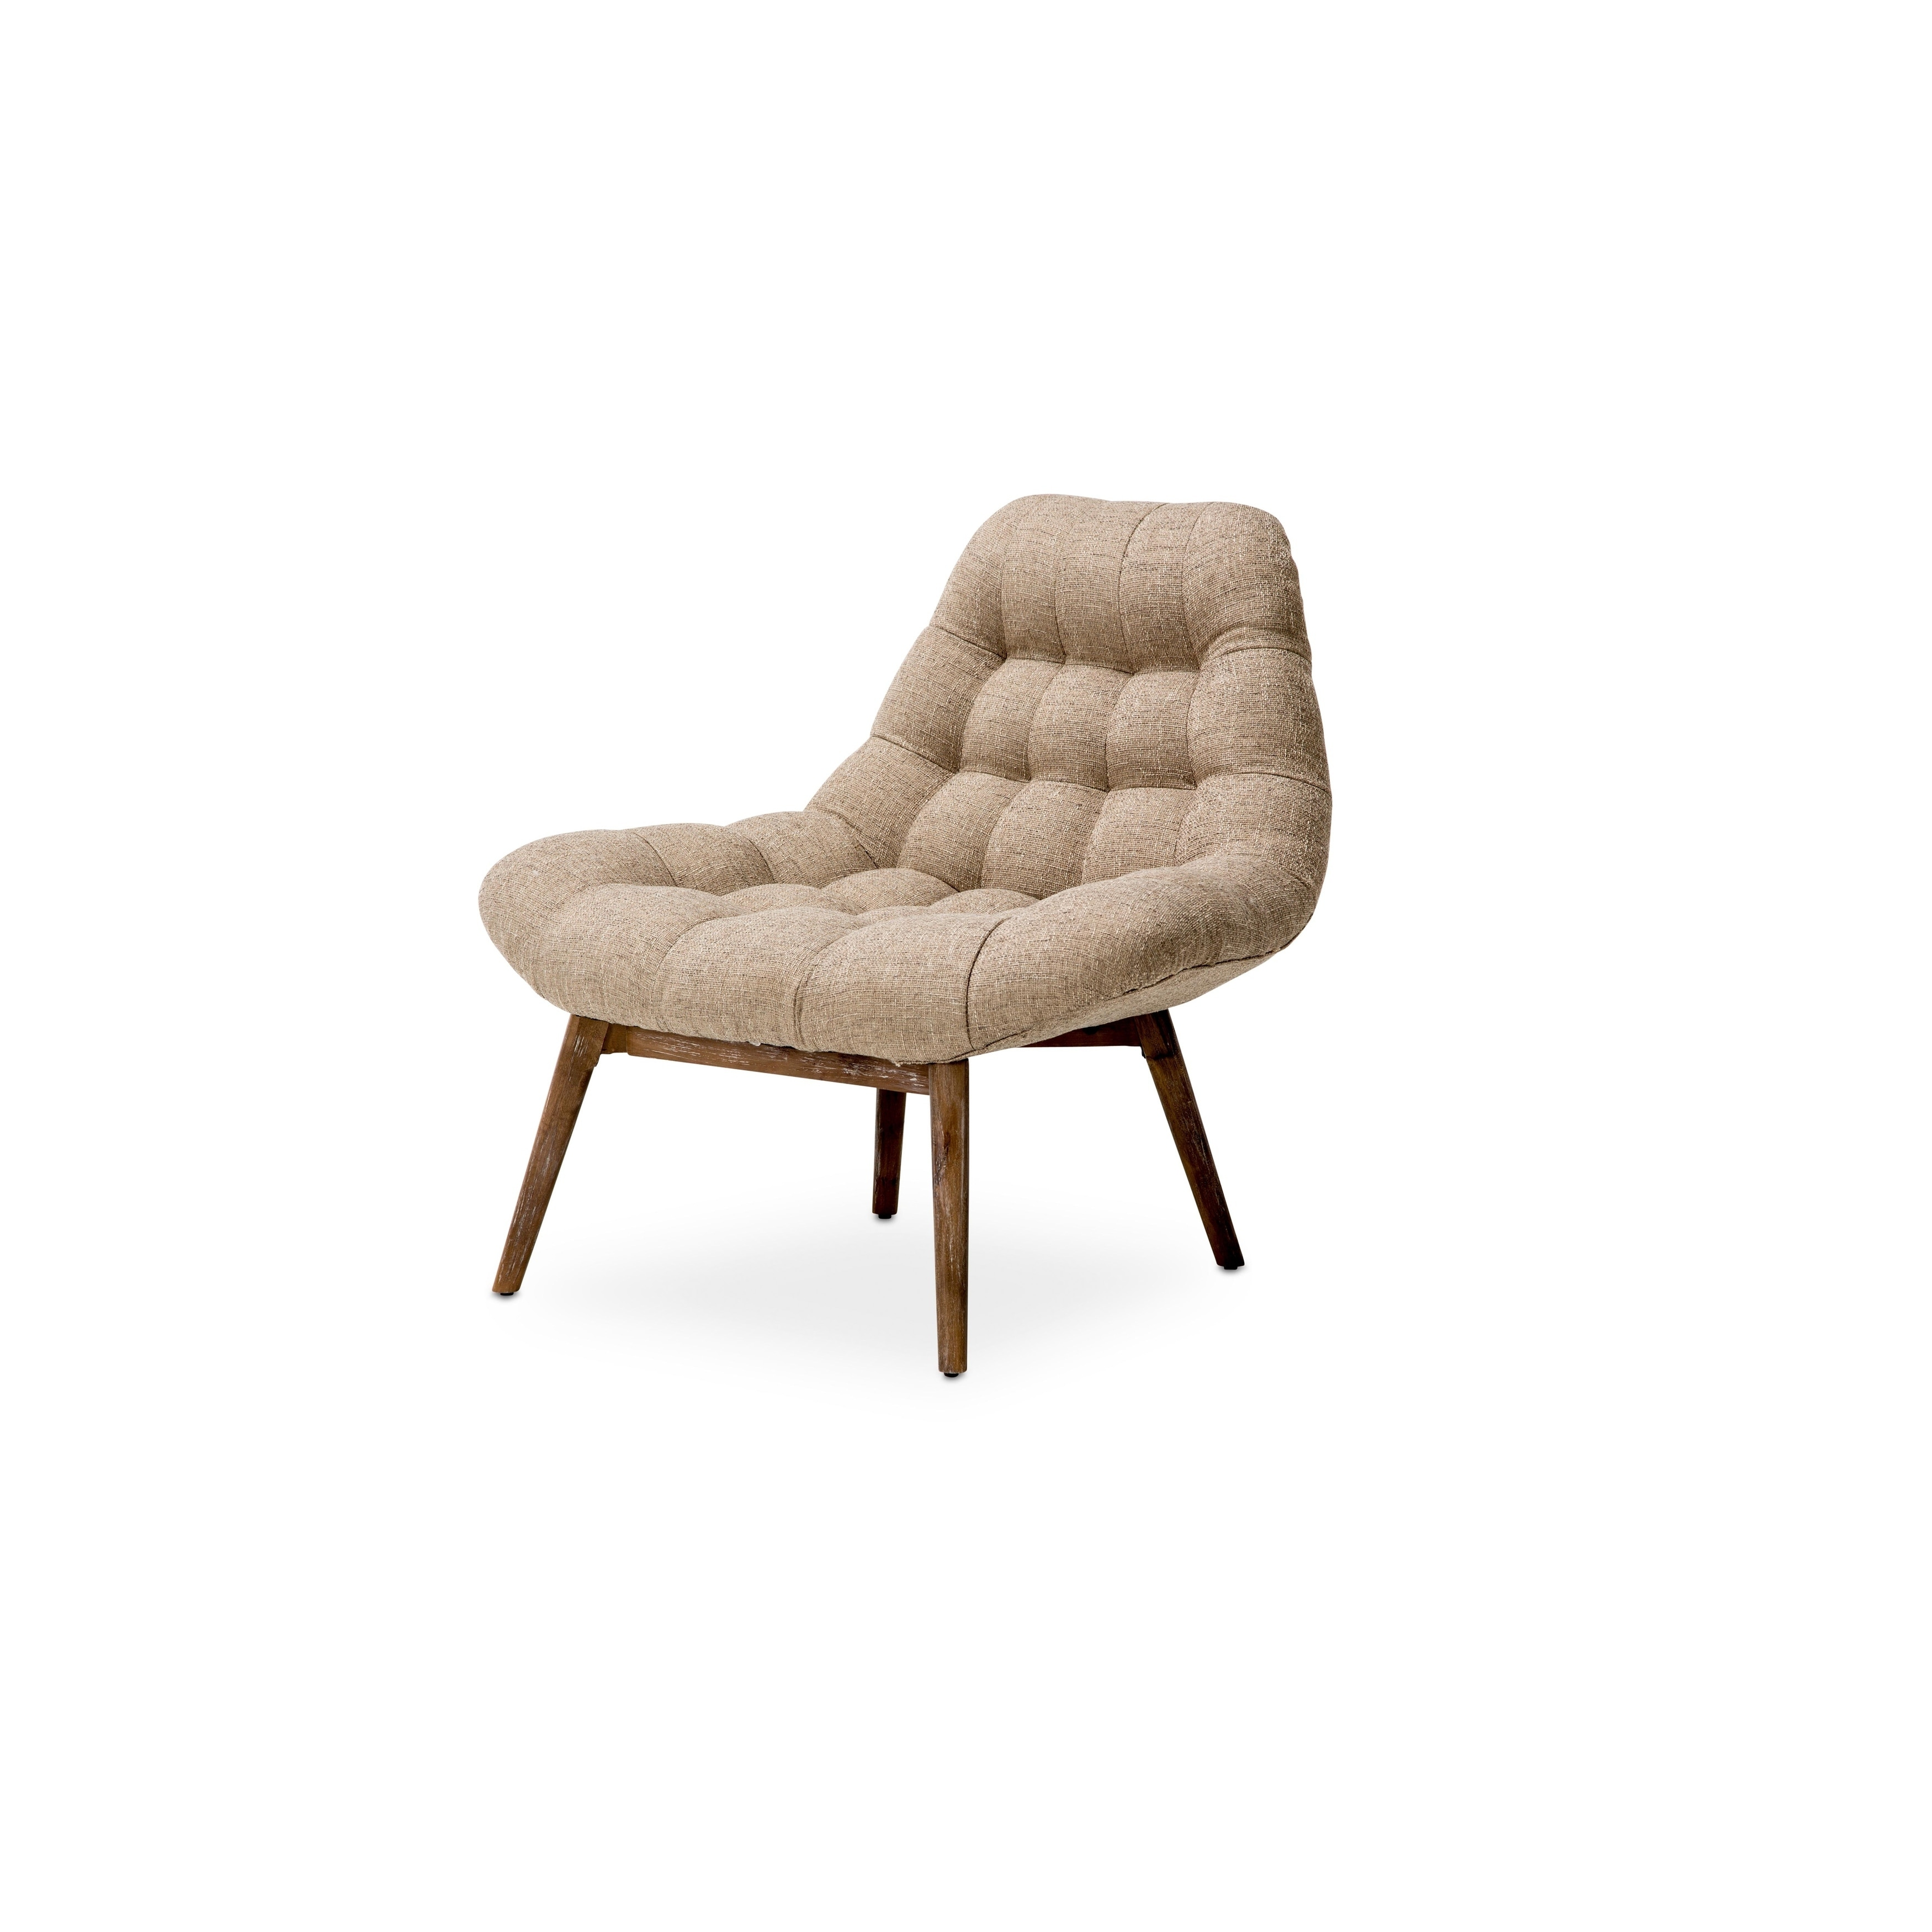 Bayside Gravel and Driftwood Tufted Accent Chair by Kathy Ireland